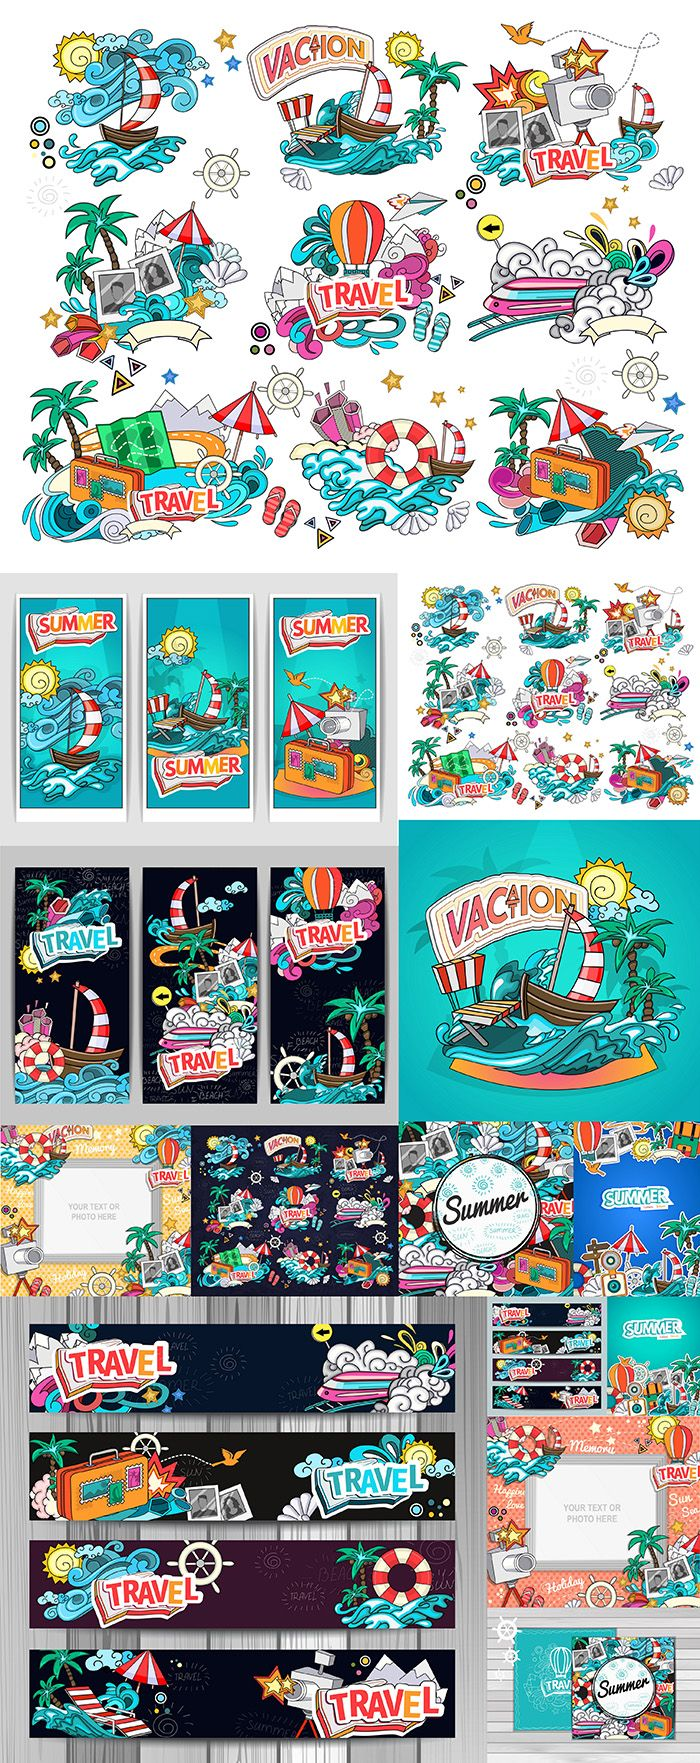 Блог Колибри: Summer vacation, frames and backgrounds vector